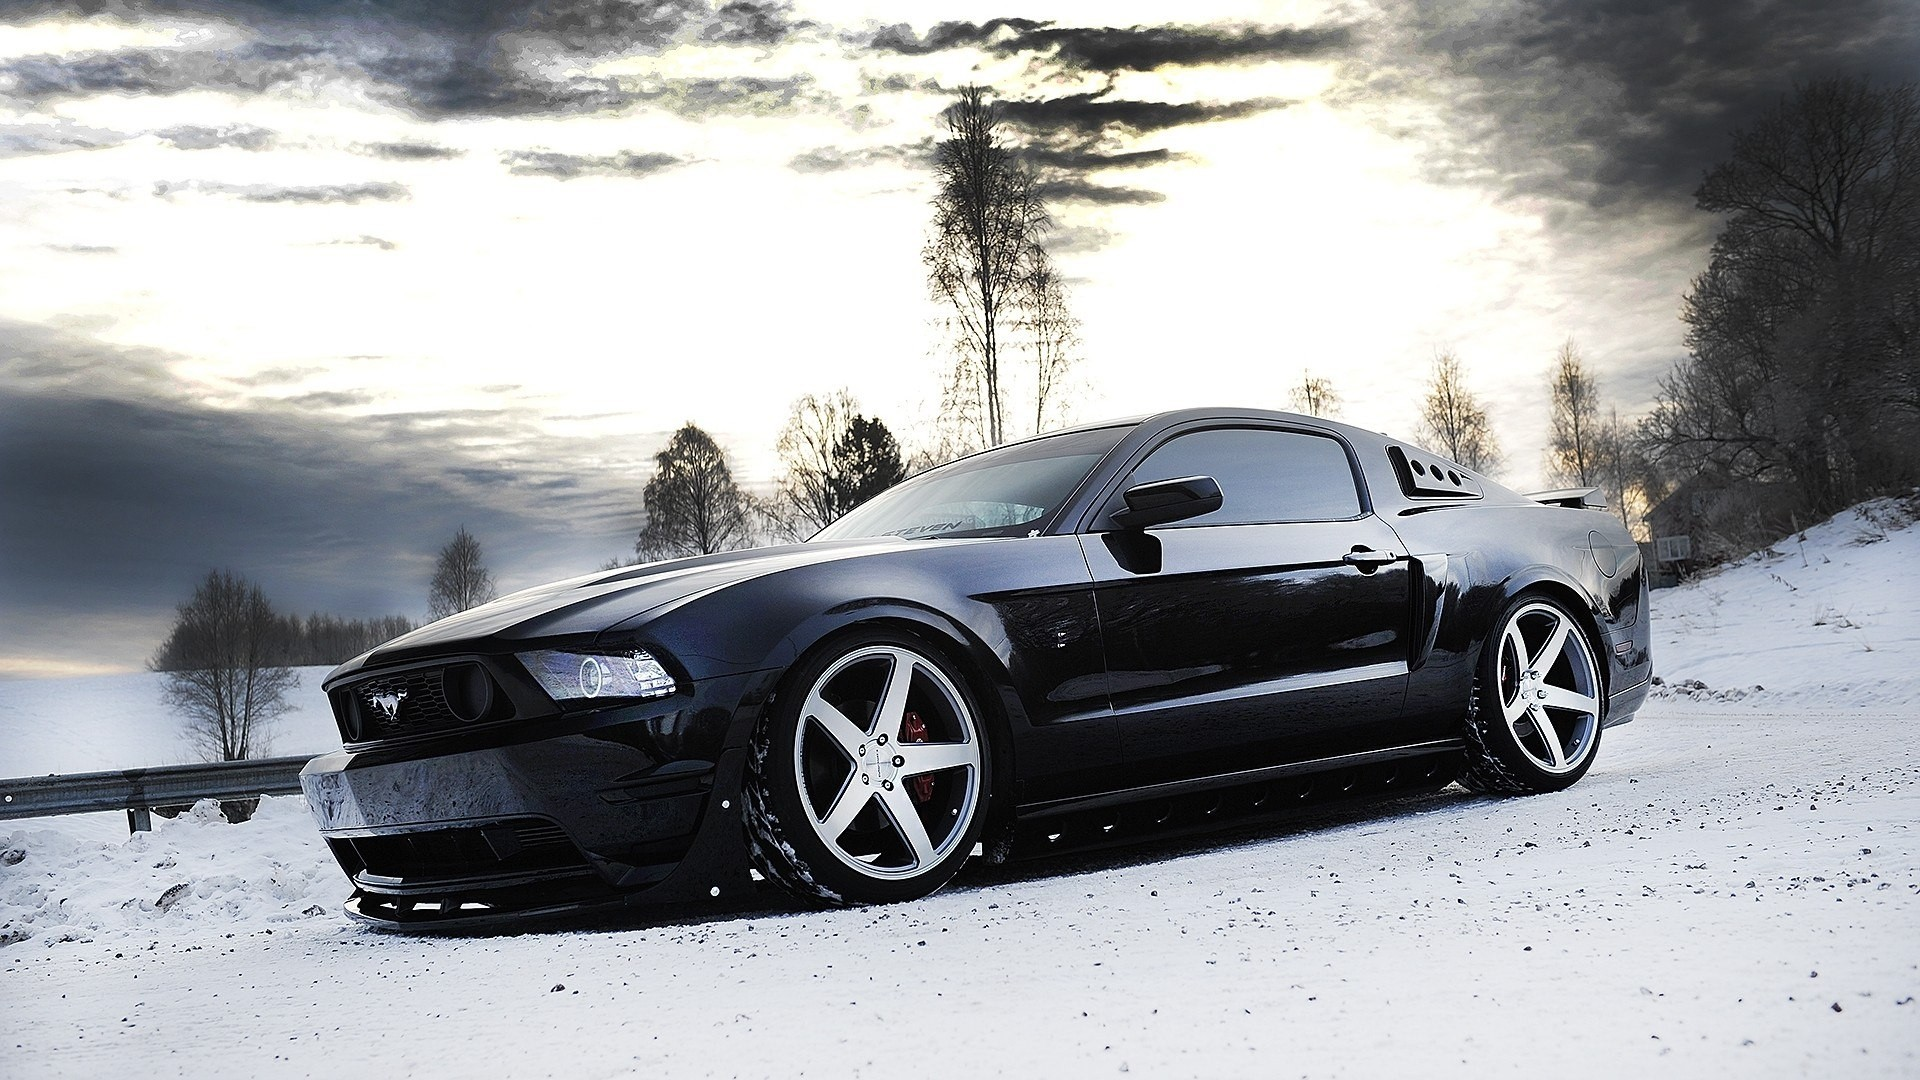 Mustang Wallpaper Black Mustang Wallpaper Hd 1920x1080 Download Hd Wallpaper Wallpapertip